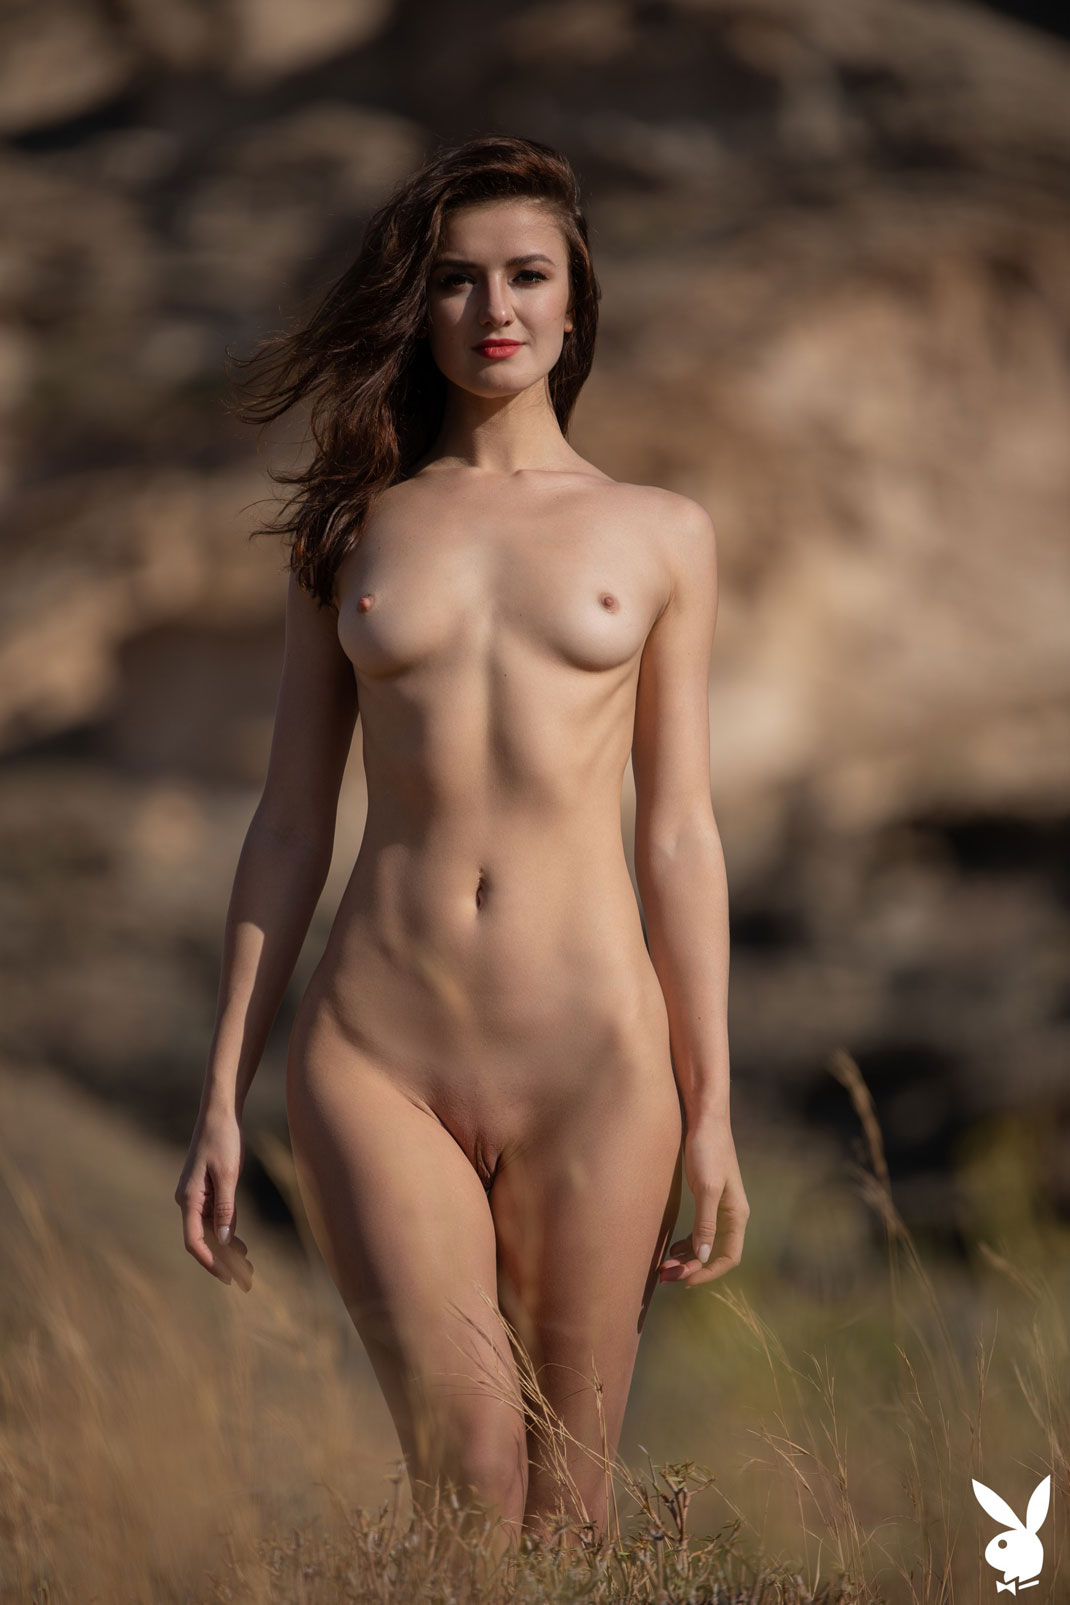 Nude elina nude pictures,